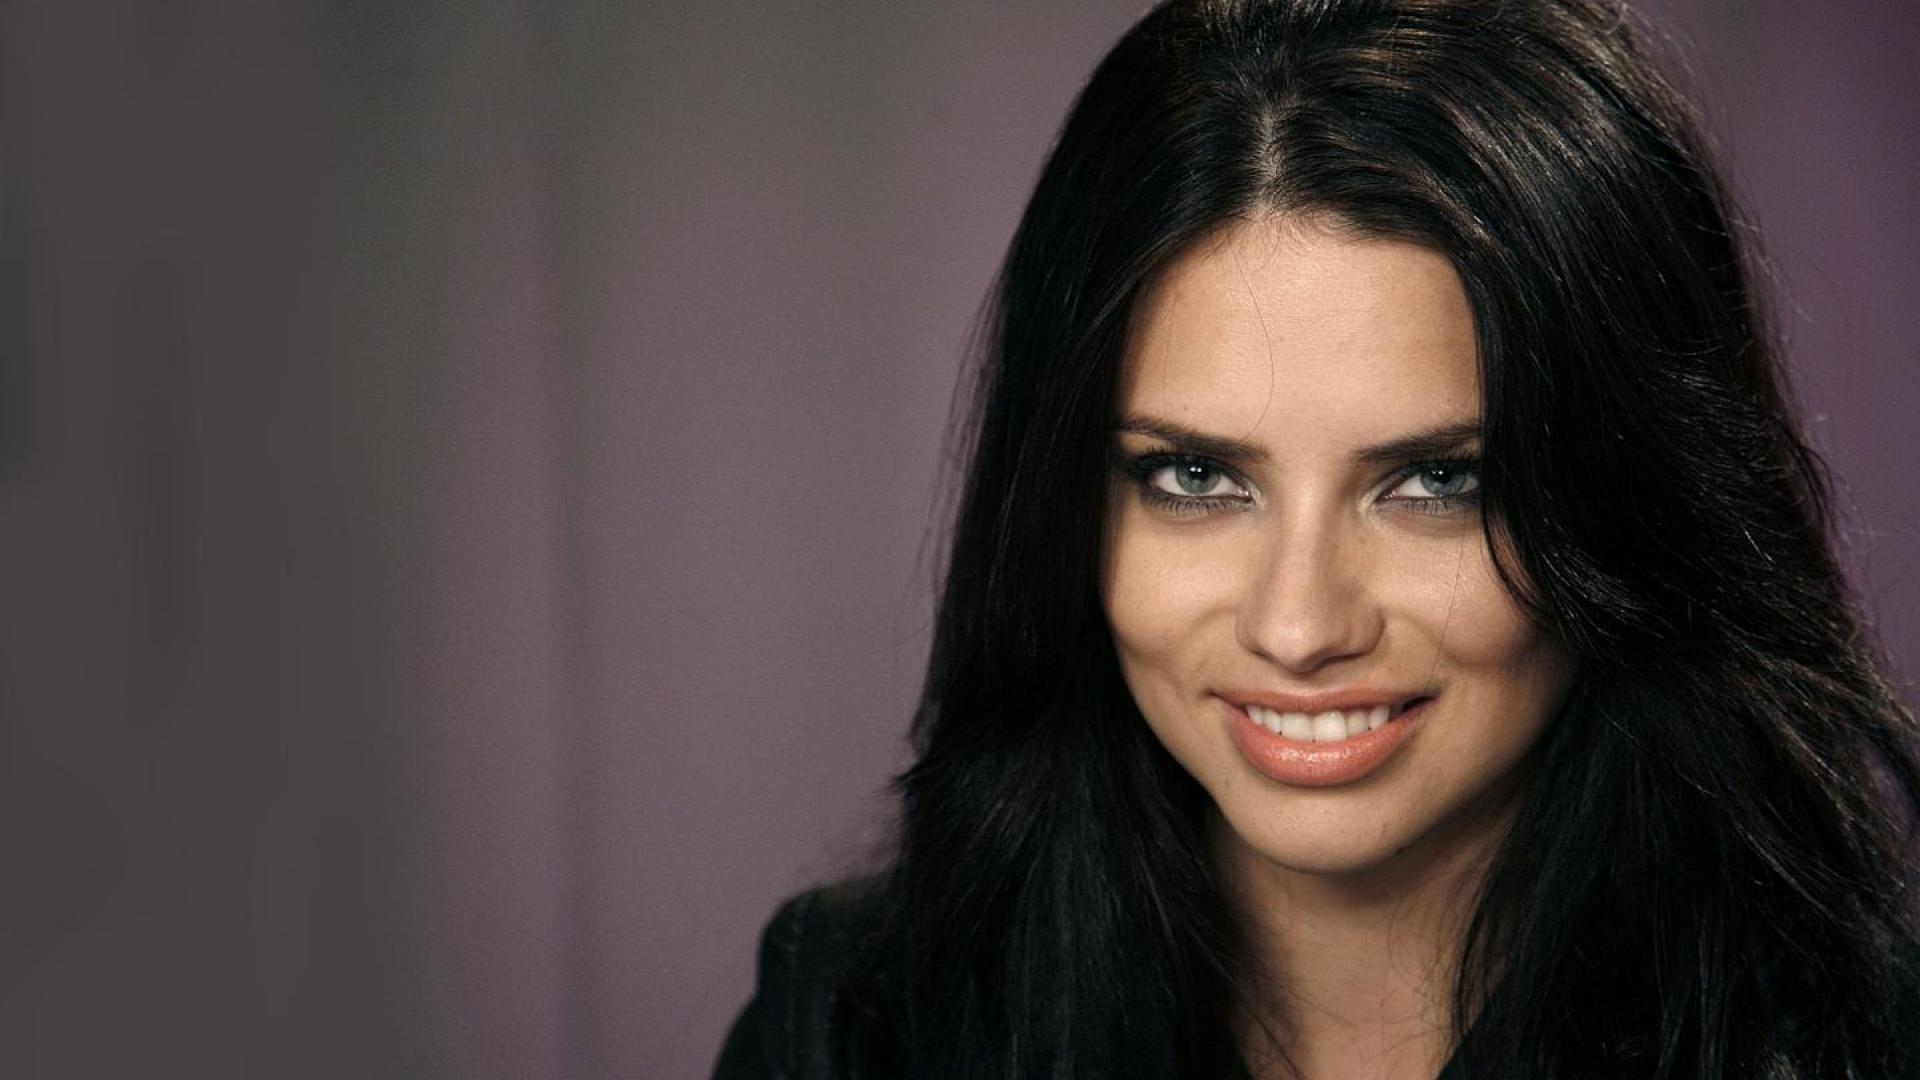 Adriana lima wallpapers impremedia adriana lima desktop wallpaper voltagebd Image collections